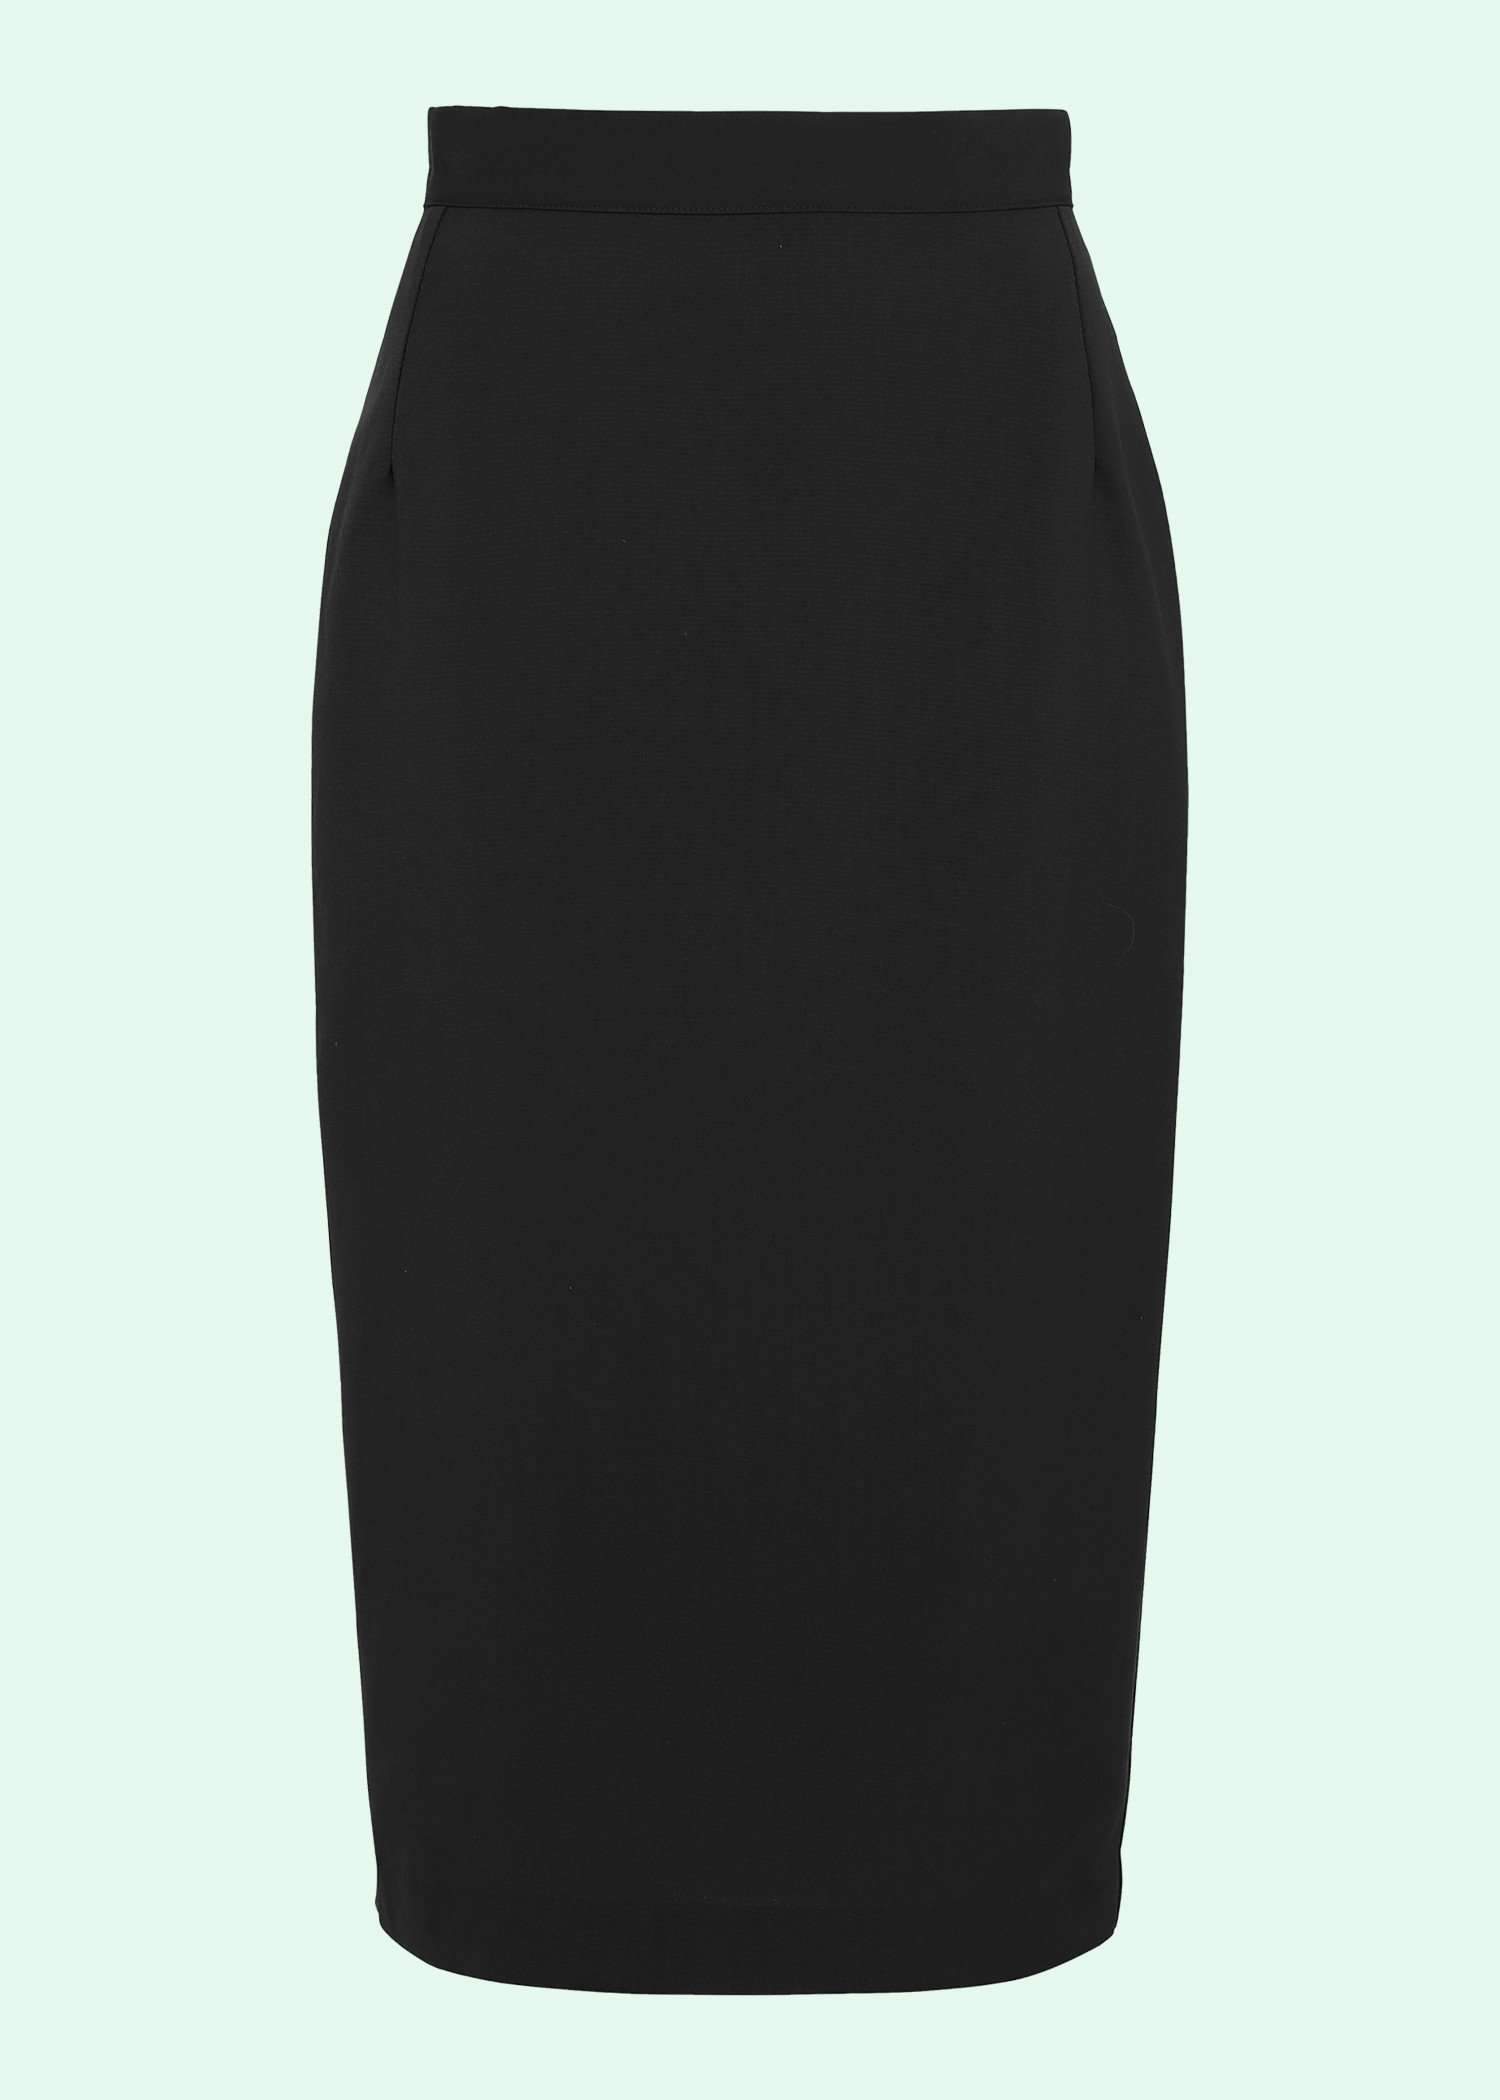 Pencil skirt from House of Foxy